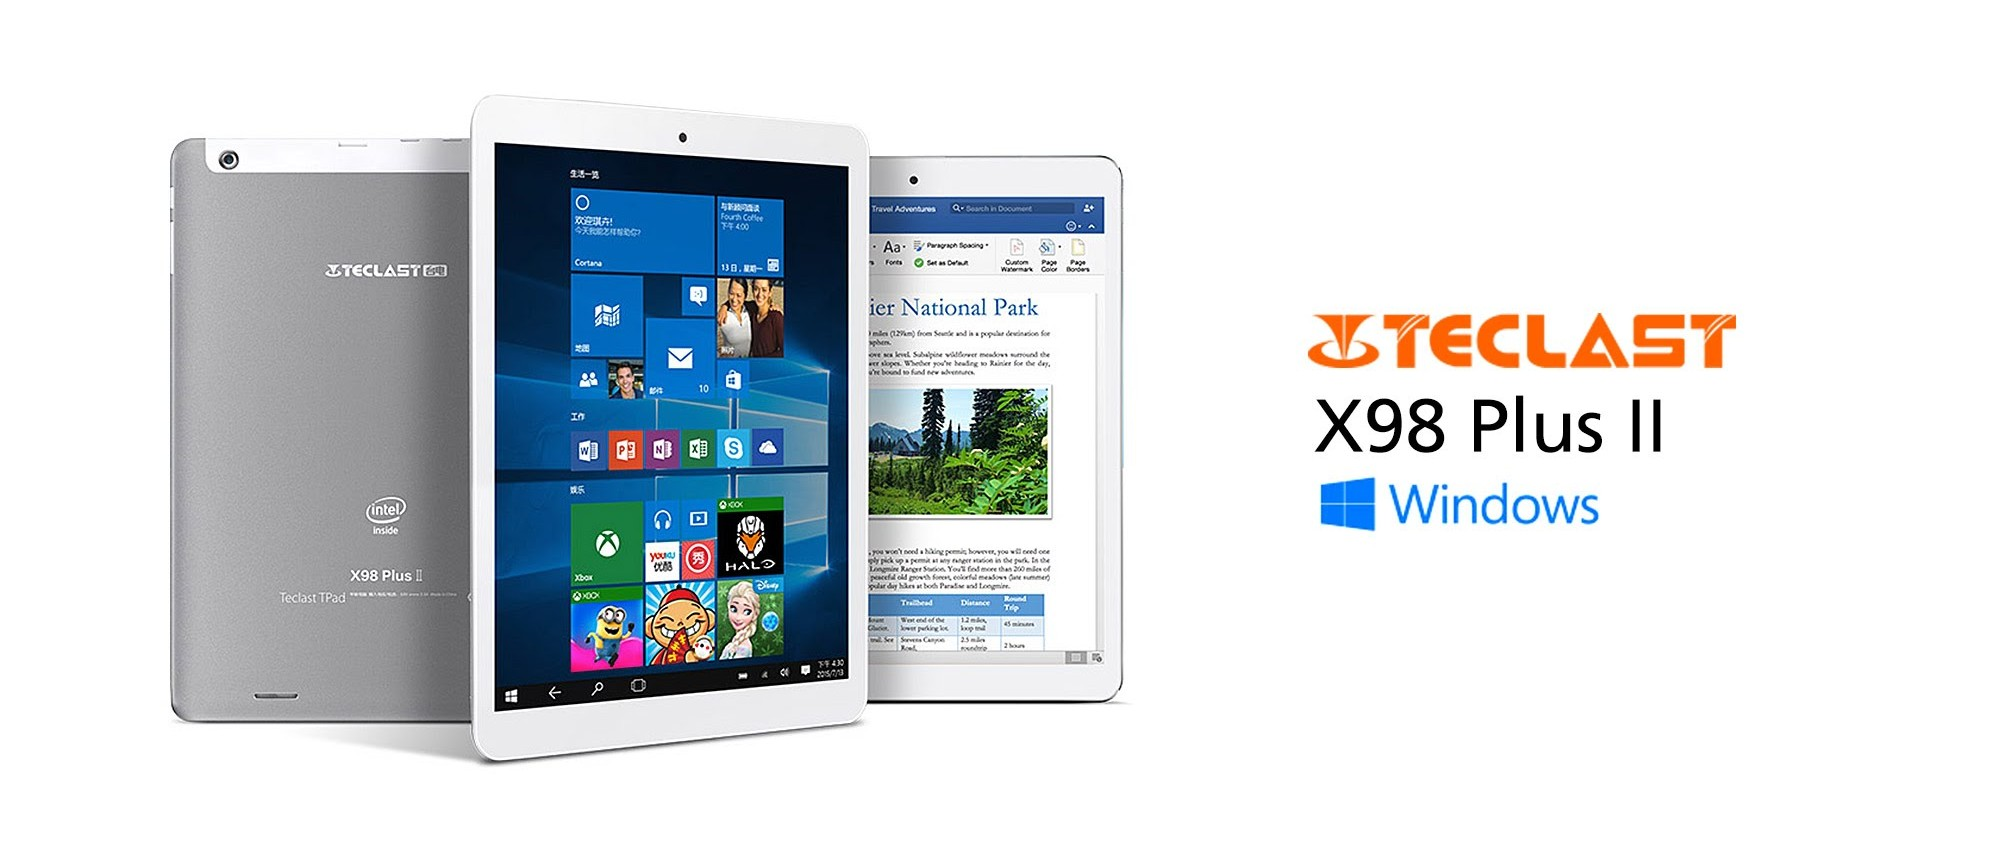 Teclast X98 PLus II widnows 10